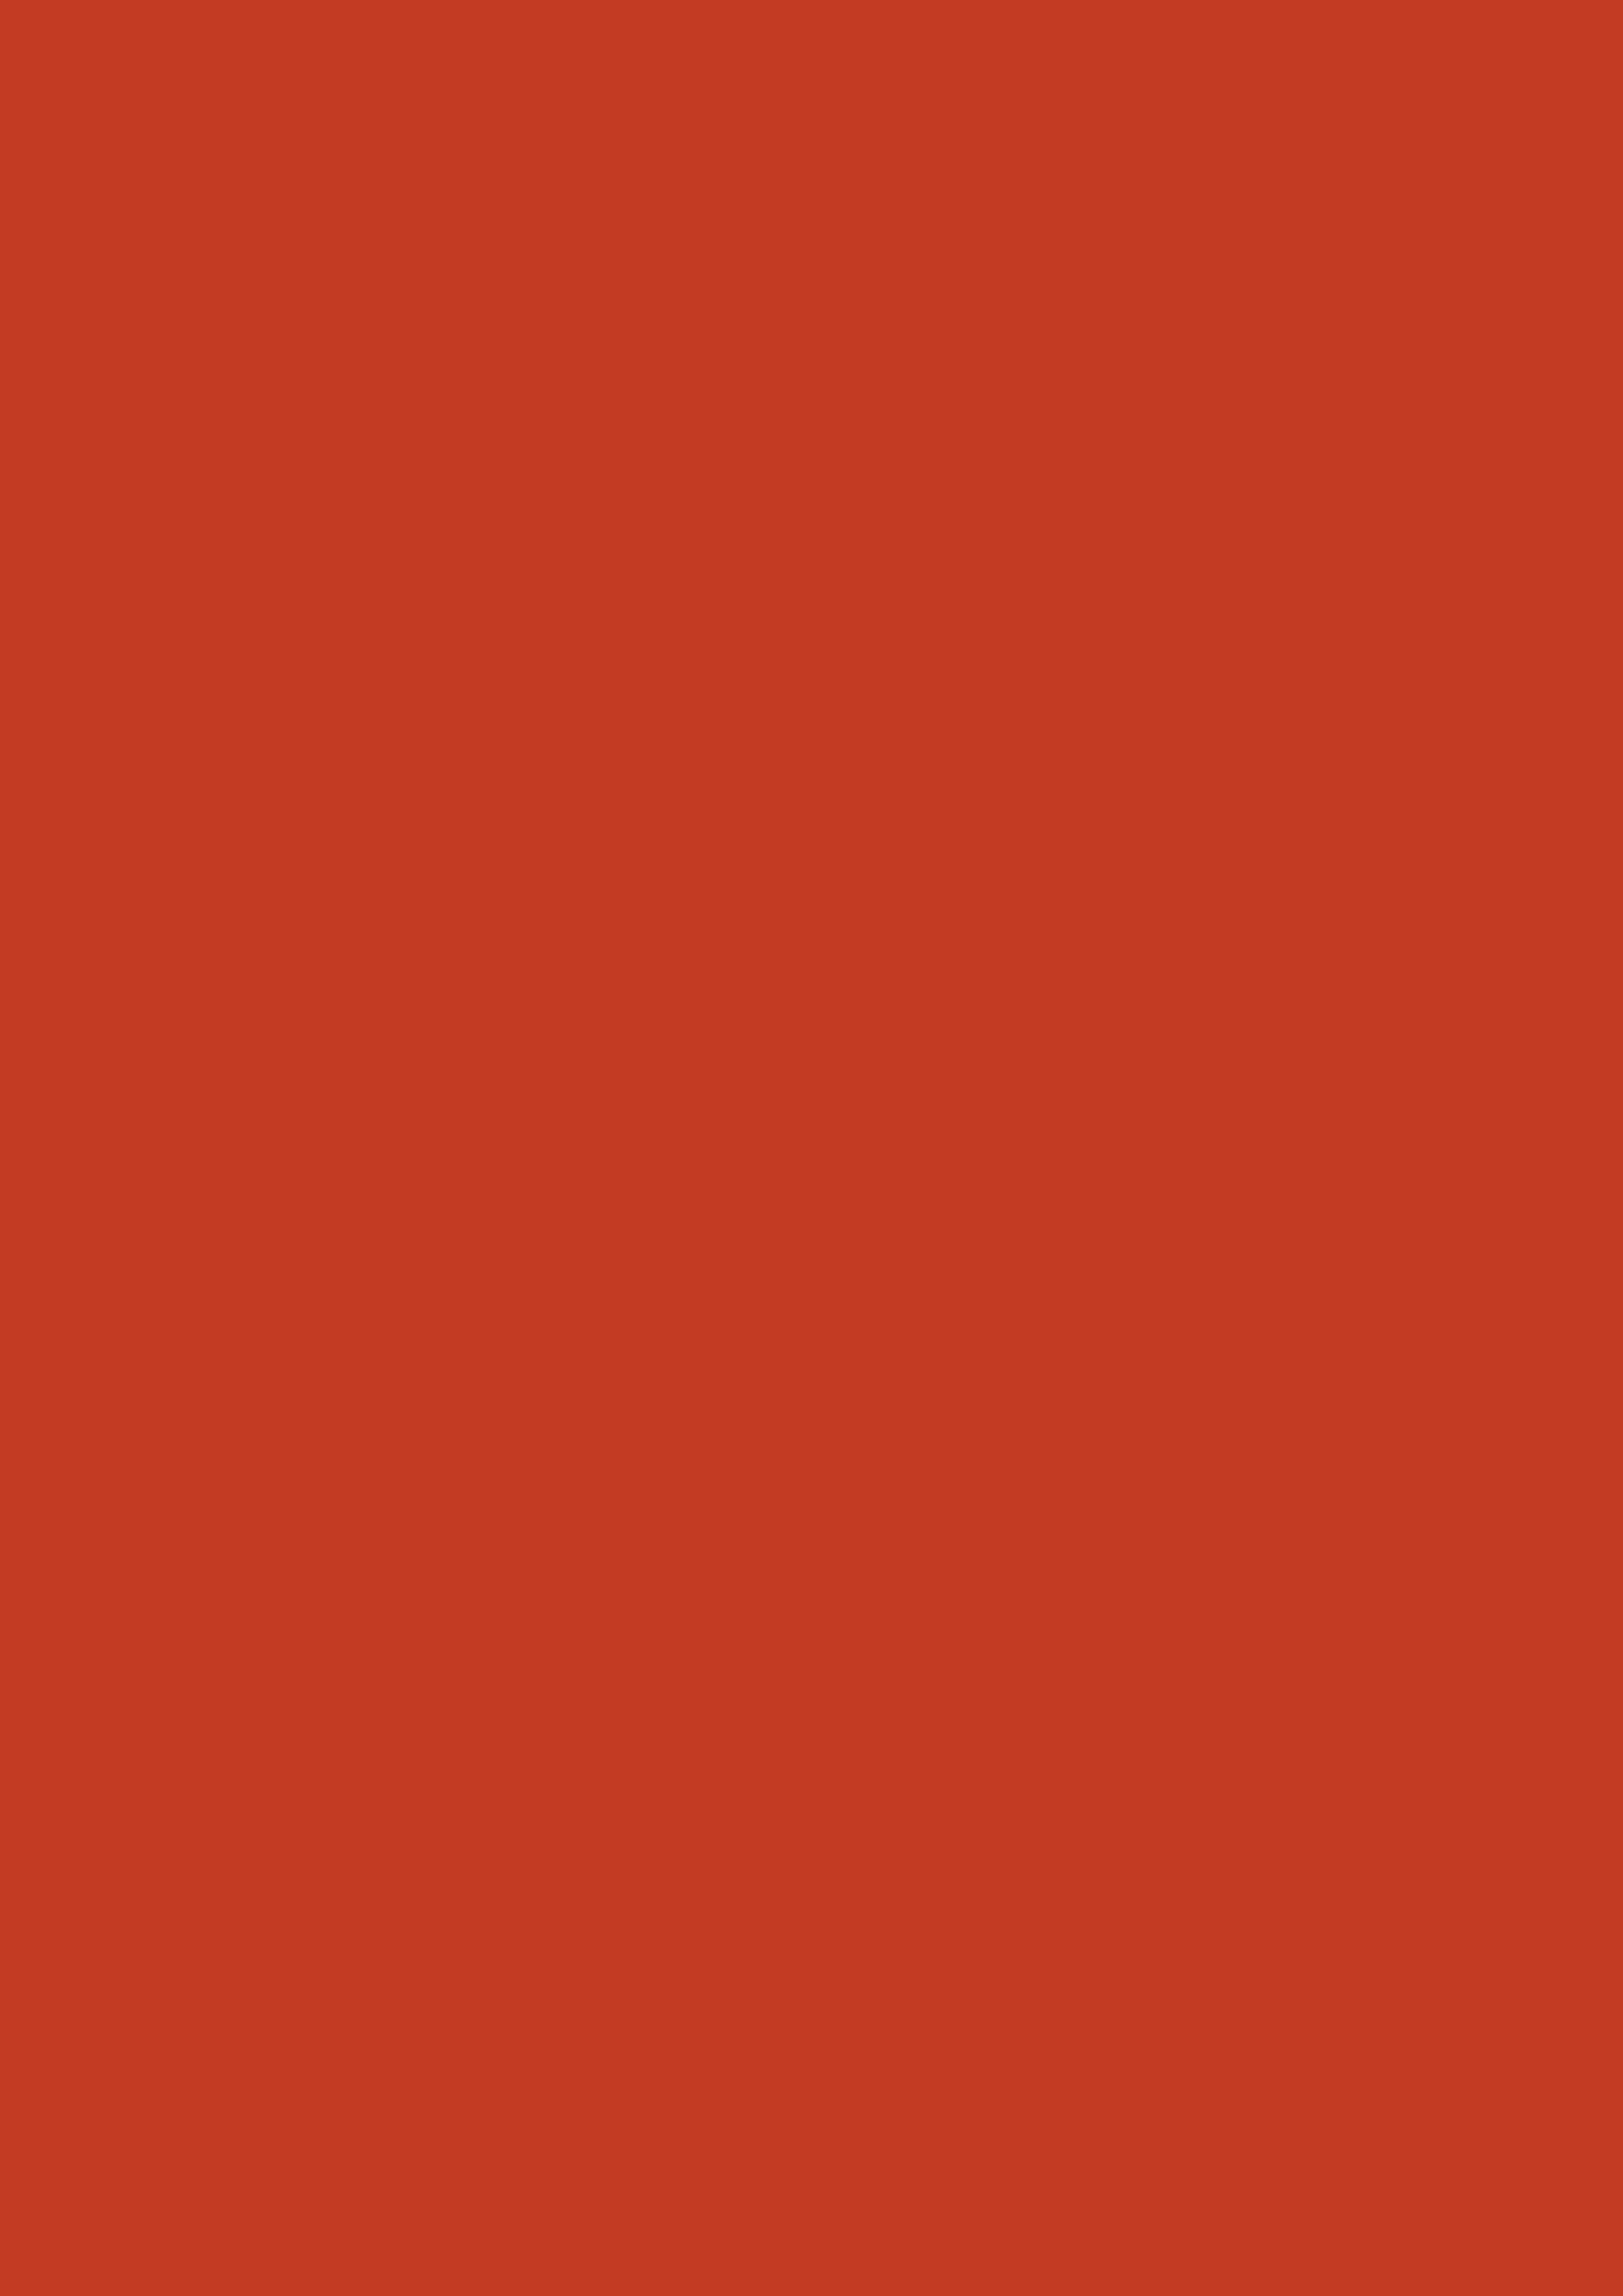 2480x3508 Dark Pastel Red Solid Color Background